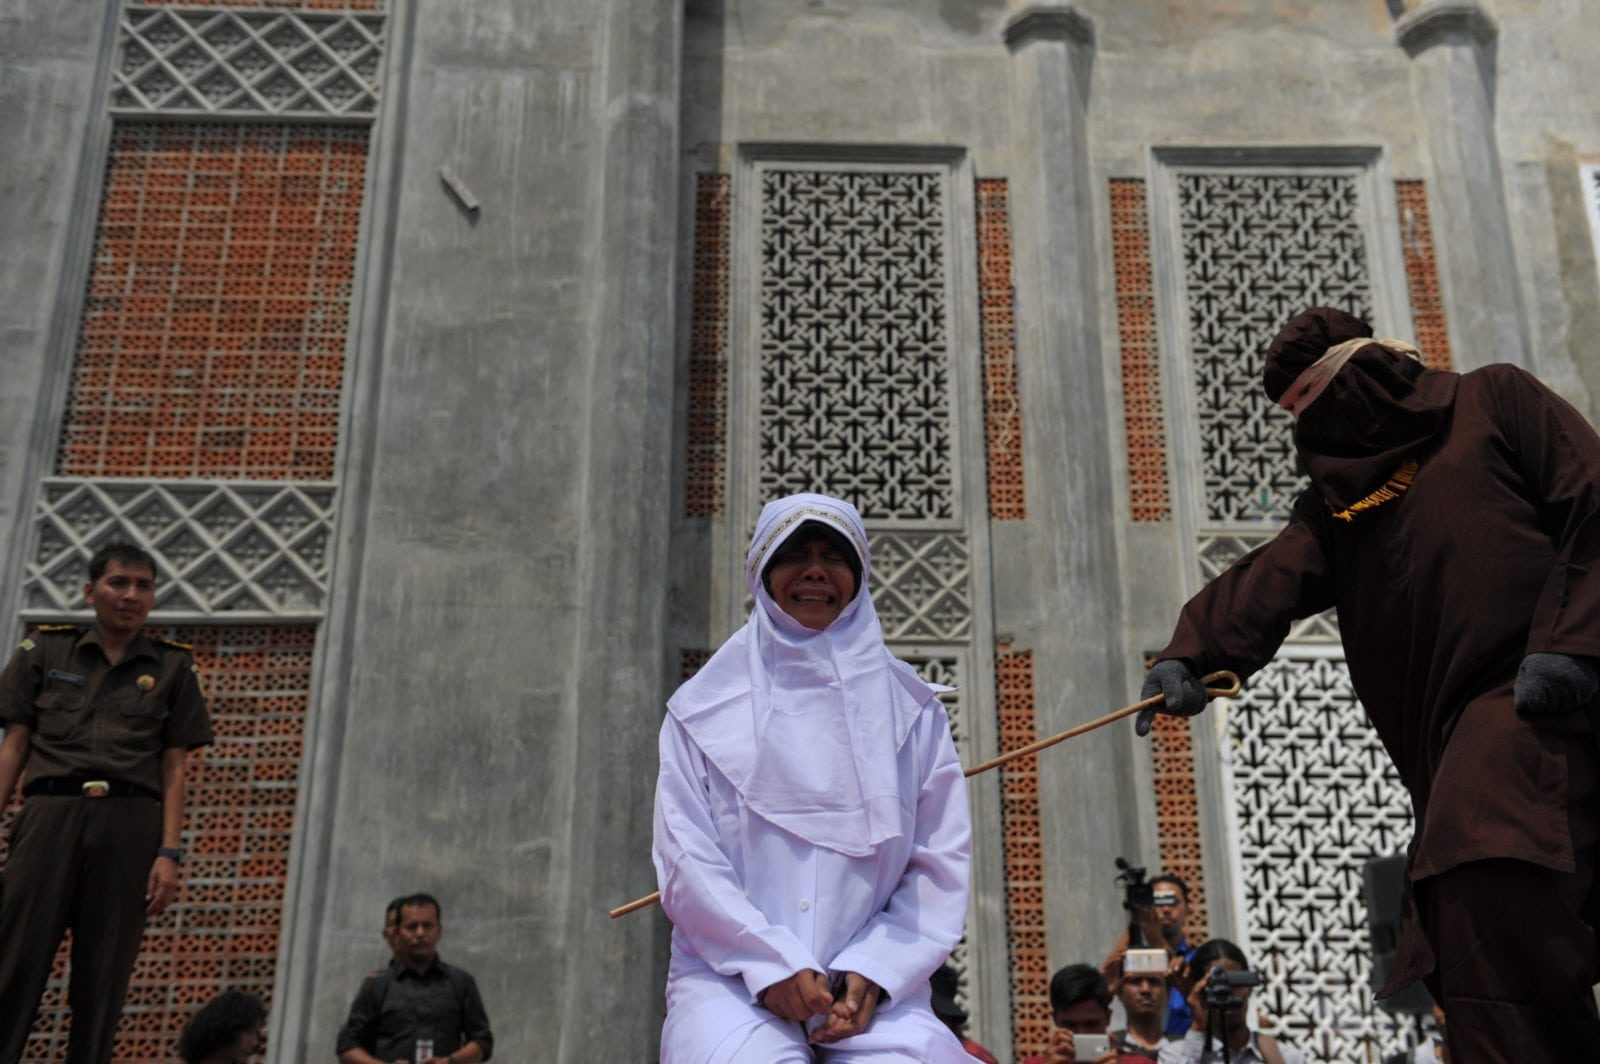 TOPSHOT - A religious officer canes an Acehnese youth onstage as punishment for dating outside of marriage, which is against sharia law, outside a mosque in Banda Aceh on August 1, 2016. The strictly Muslim province, Aceh has become increasingly conservative in recent years and is the only one in Indonesia implementing Sharia law. / AFP / CHAIDEER MAHYUDDIN (Photo credit should read CHAIDEER MAHYUDDIN/AFP/Getty Images)